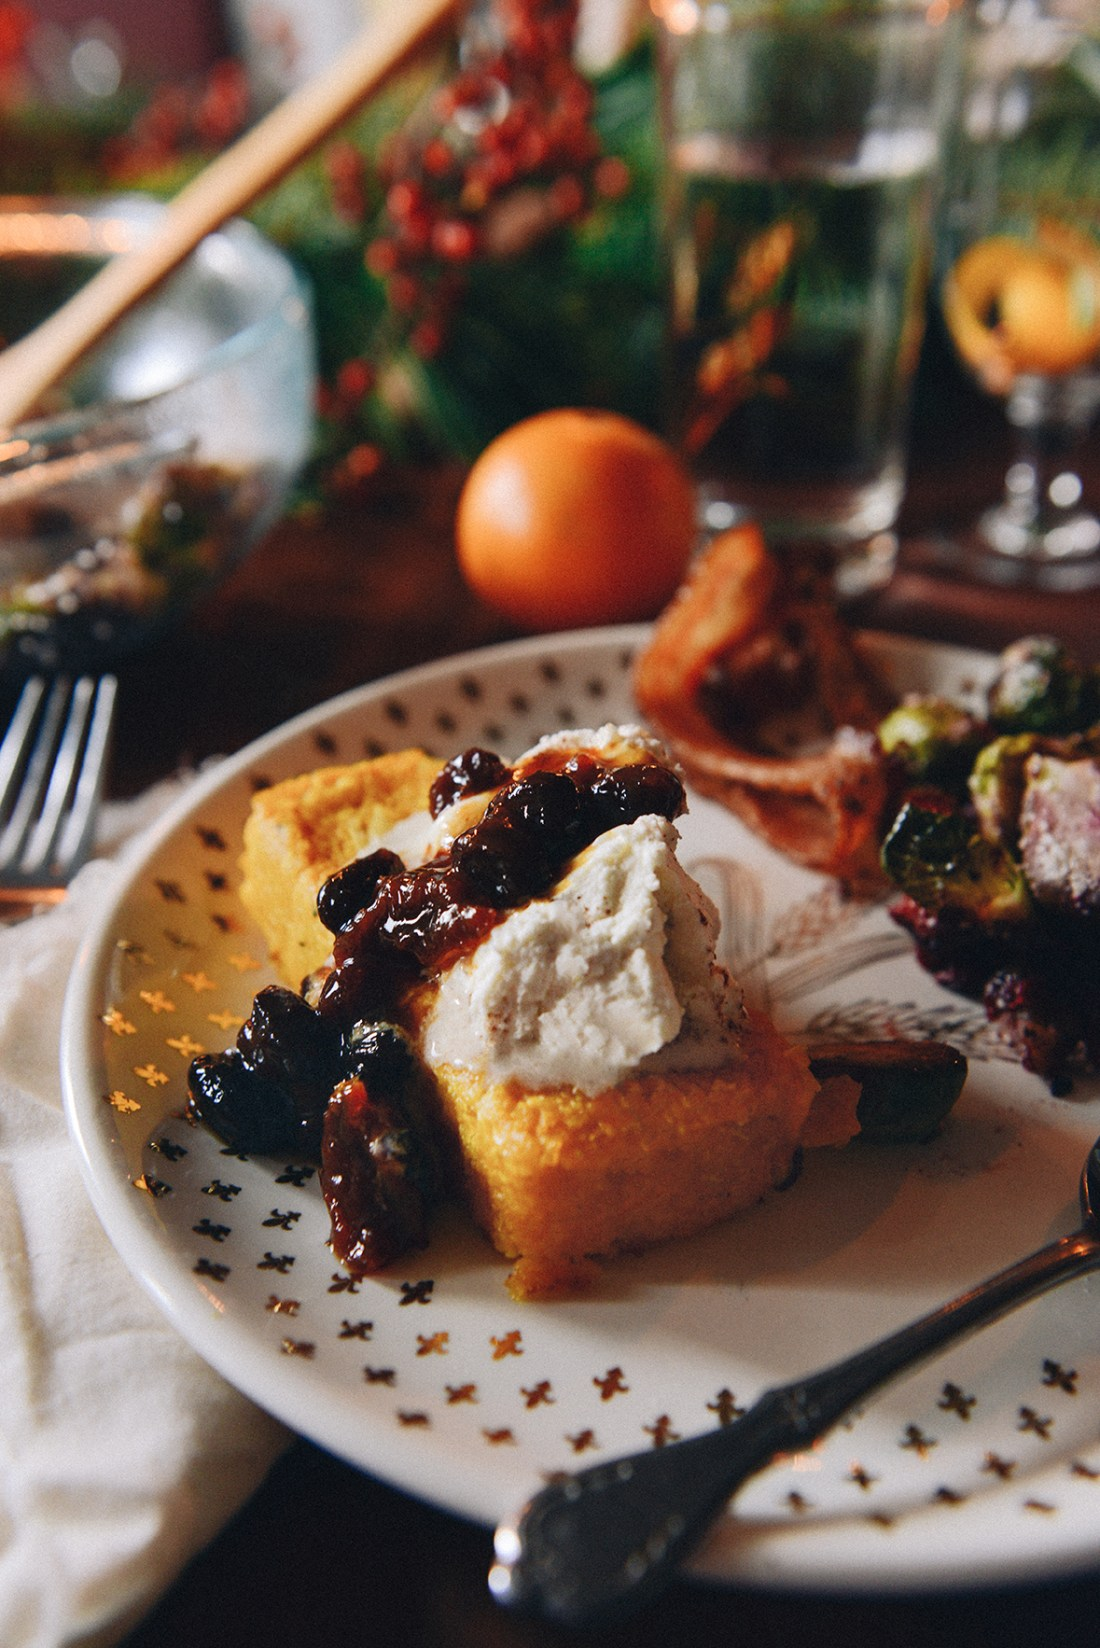 Butternut Squash Polenta w/ Stewed Fruit & Whipped Mascarpone for a Wintry Brunch // www.WithTheGrains.com